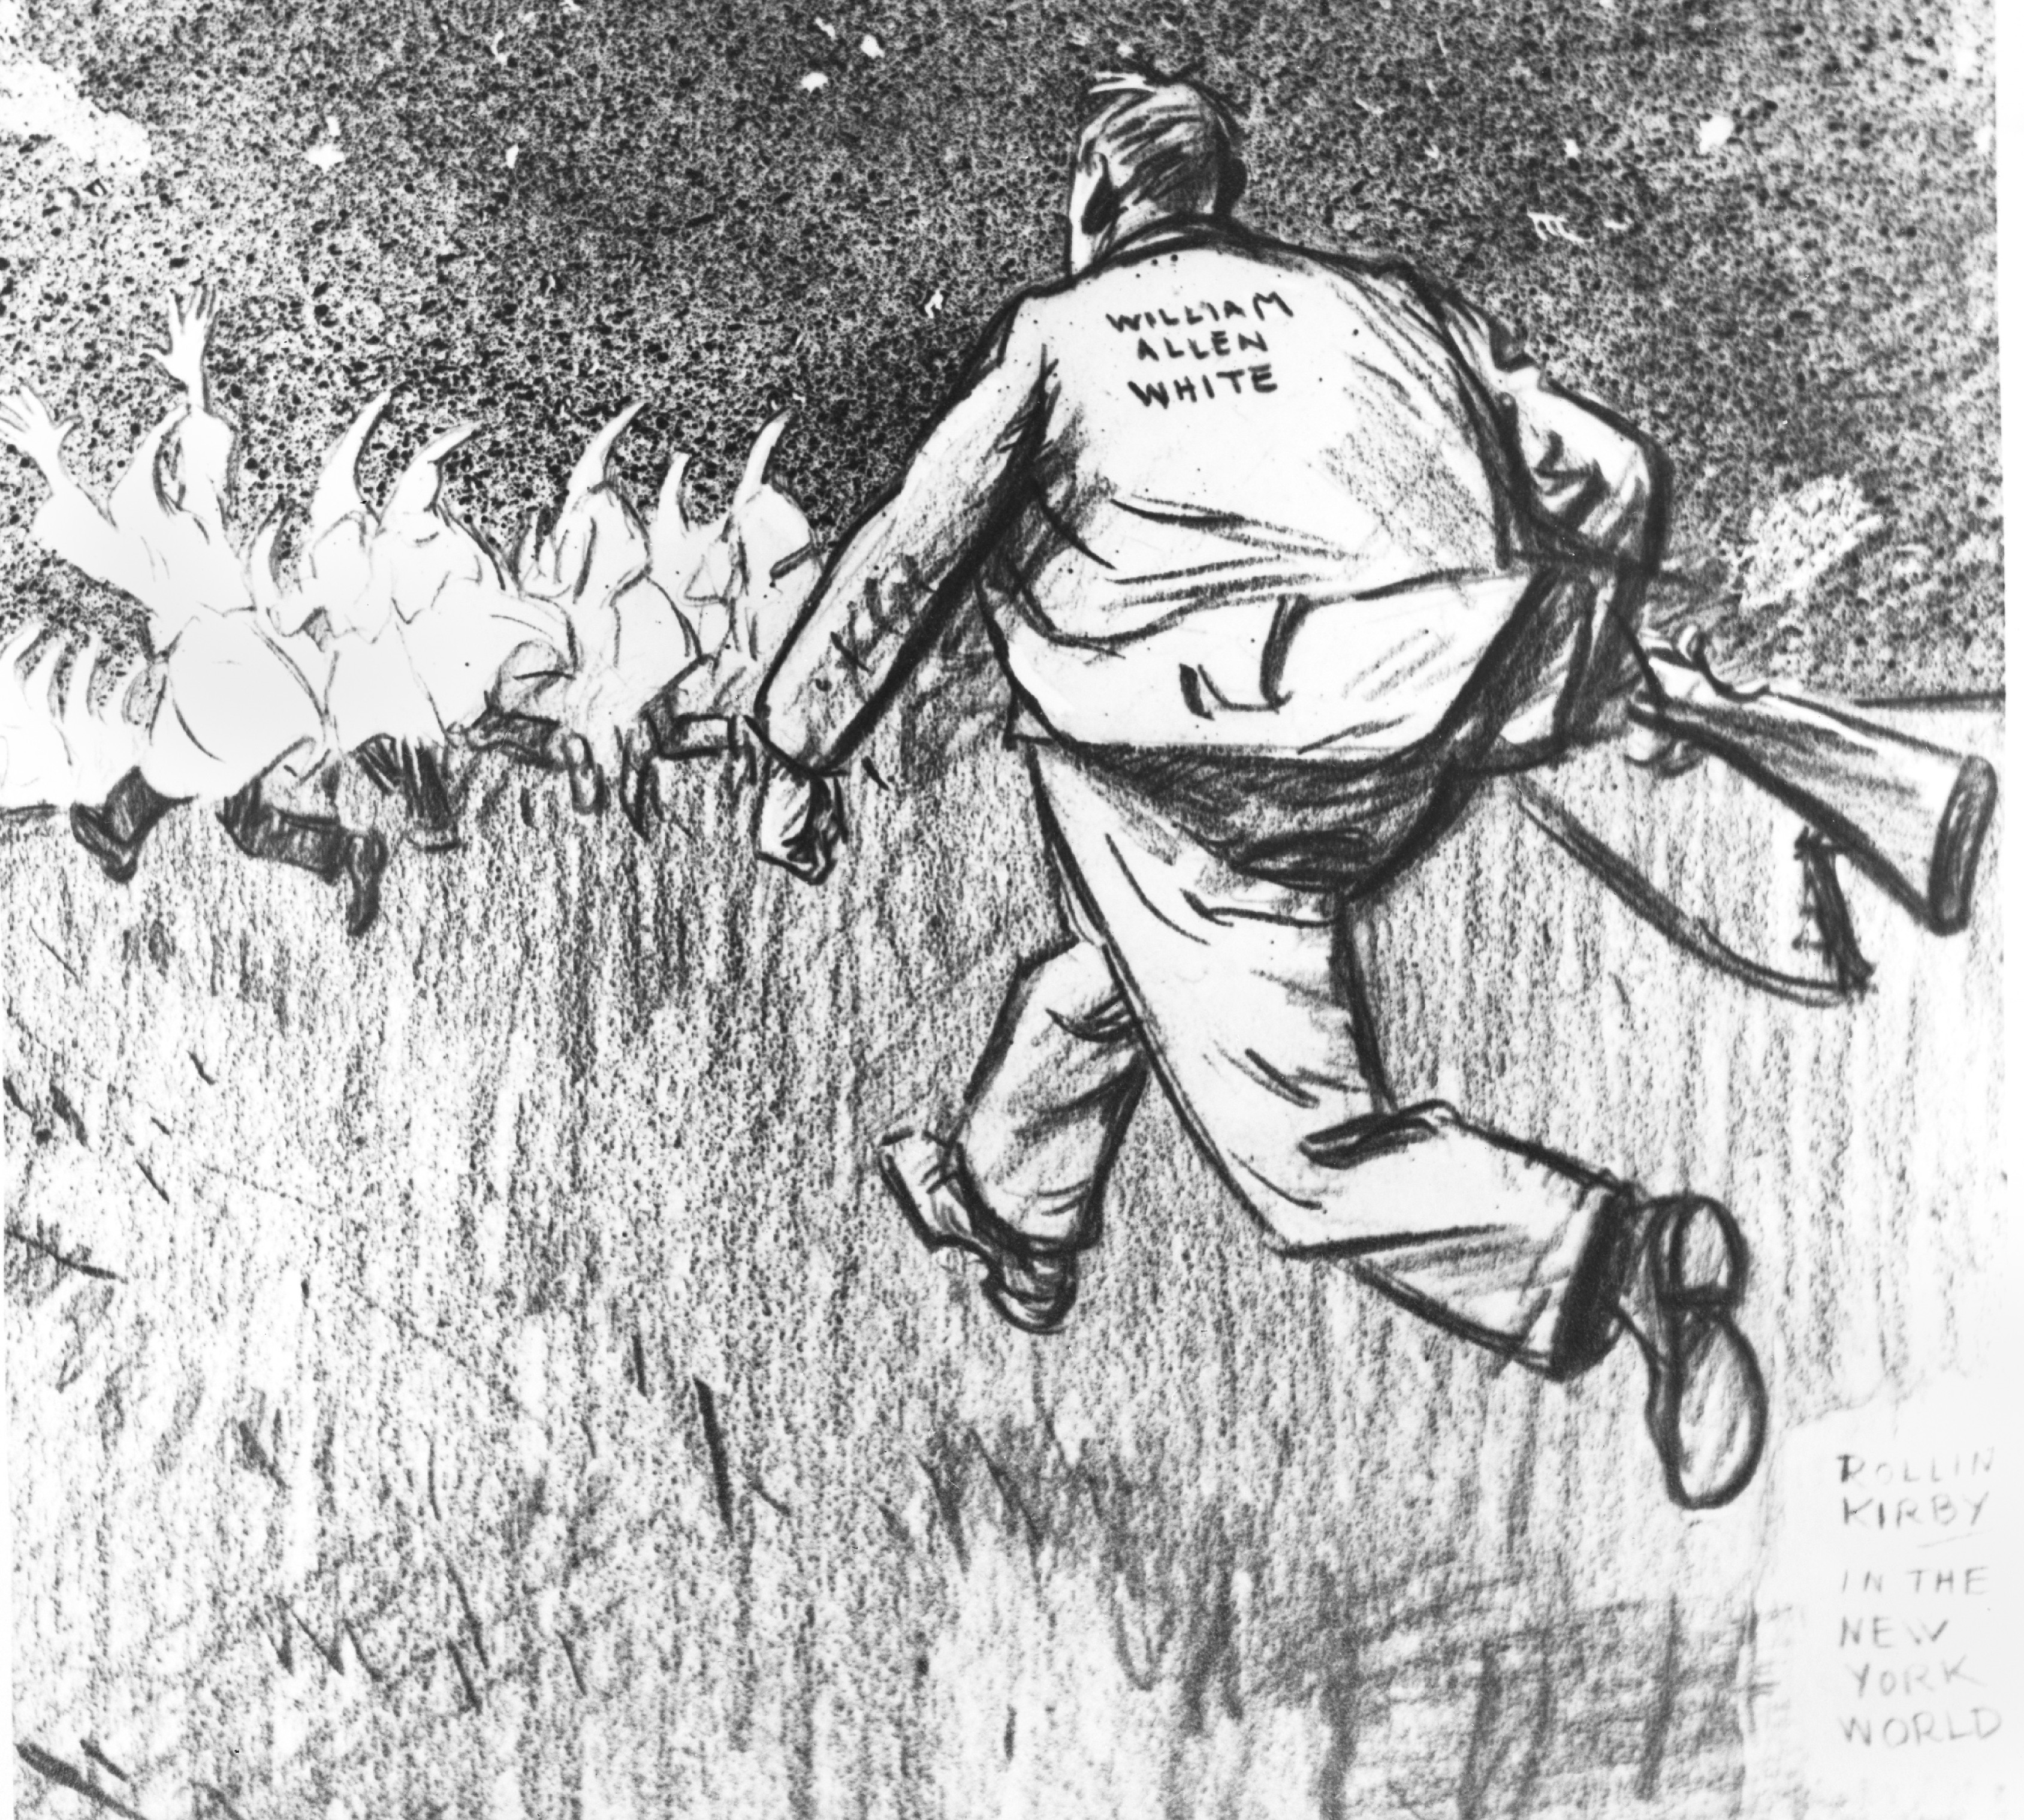 """William Allen White and the KKK in Kansas: """"A Real American Goes Hunting"""" Event Image"""